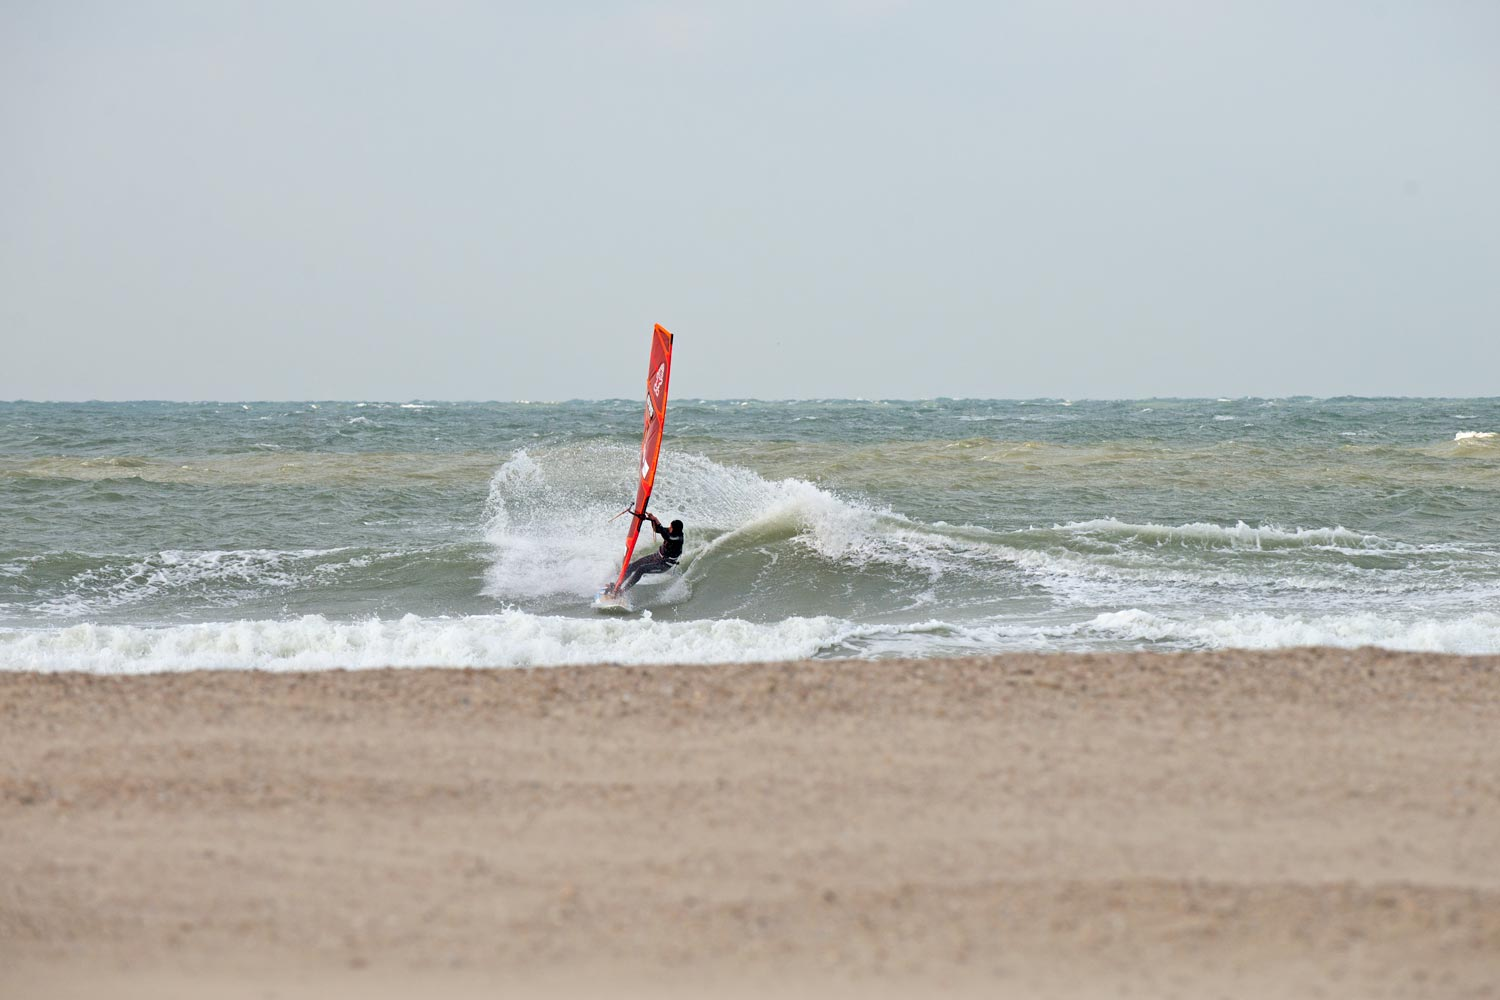 Dieter van der Eyken at one of his wavy home spots in Domburg - Pic: Continentseven|Kerstin Reiger